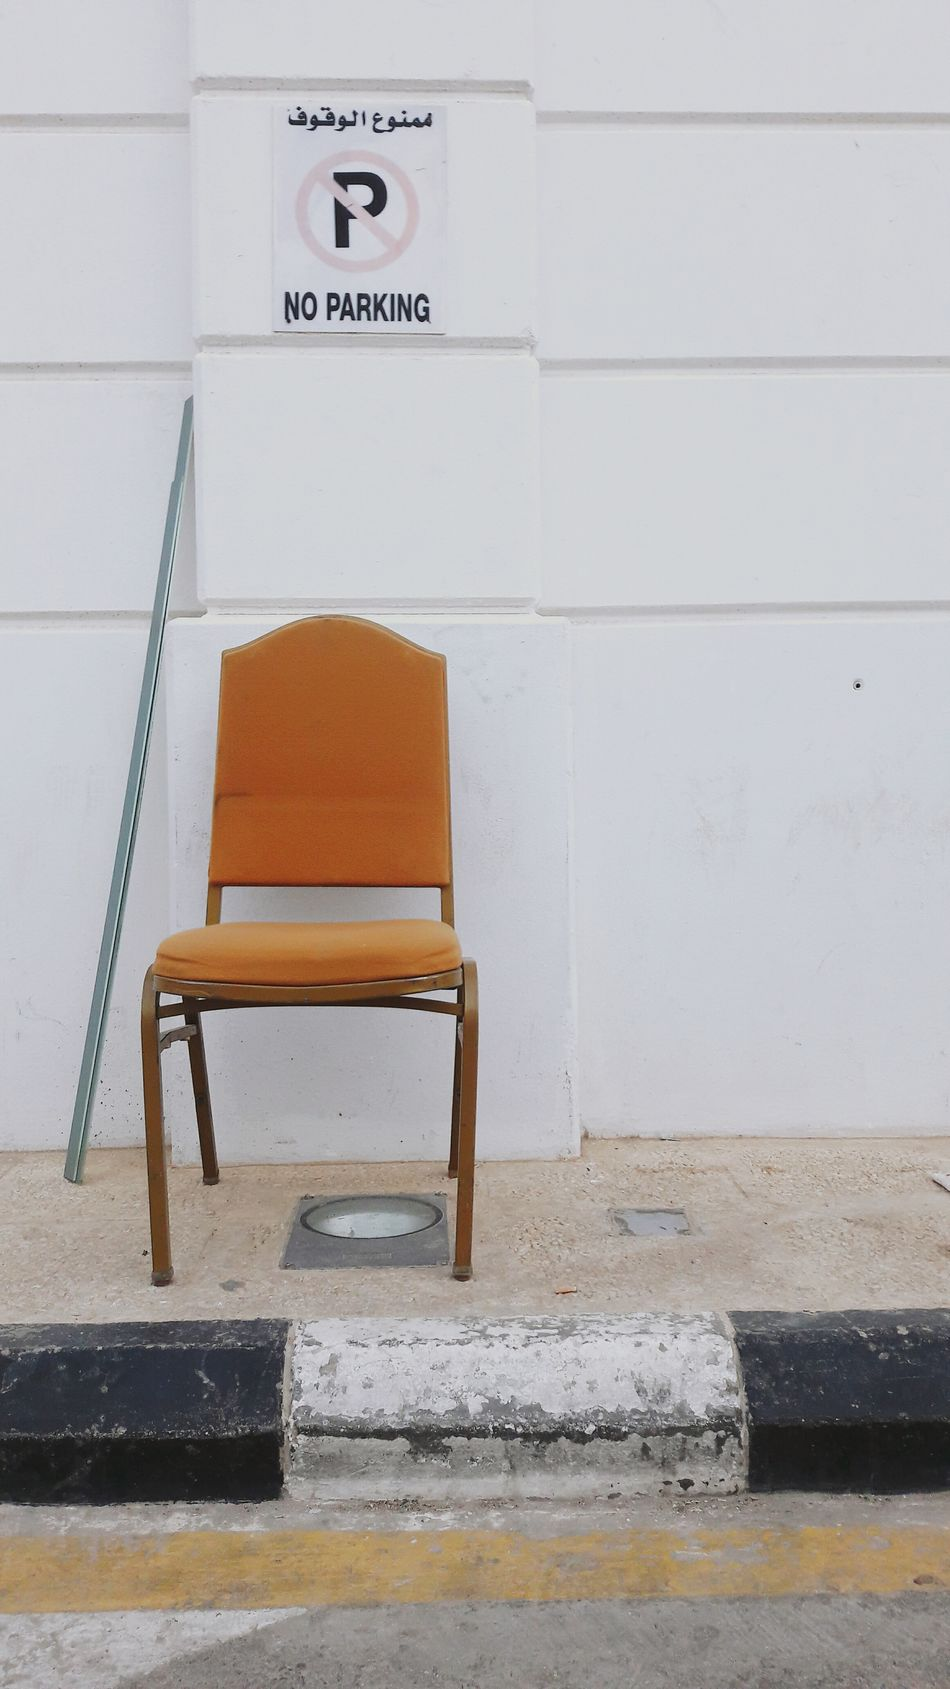 Chair No People Close-up Day Orange Color Whitebackground White Background Still Life StillLifePhotography Still Life Scenary Still Life Art Streetart Streetphotography Street Photography Street Life Street Life Photo Lines&Design Lines, Colors & Textures Lineart Minimalism Minimal Mood Minimalism Photography Minimalistic Photography Chairs Outside ChairArt